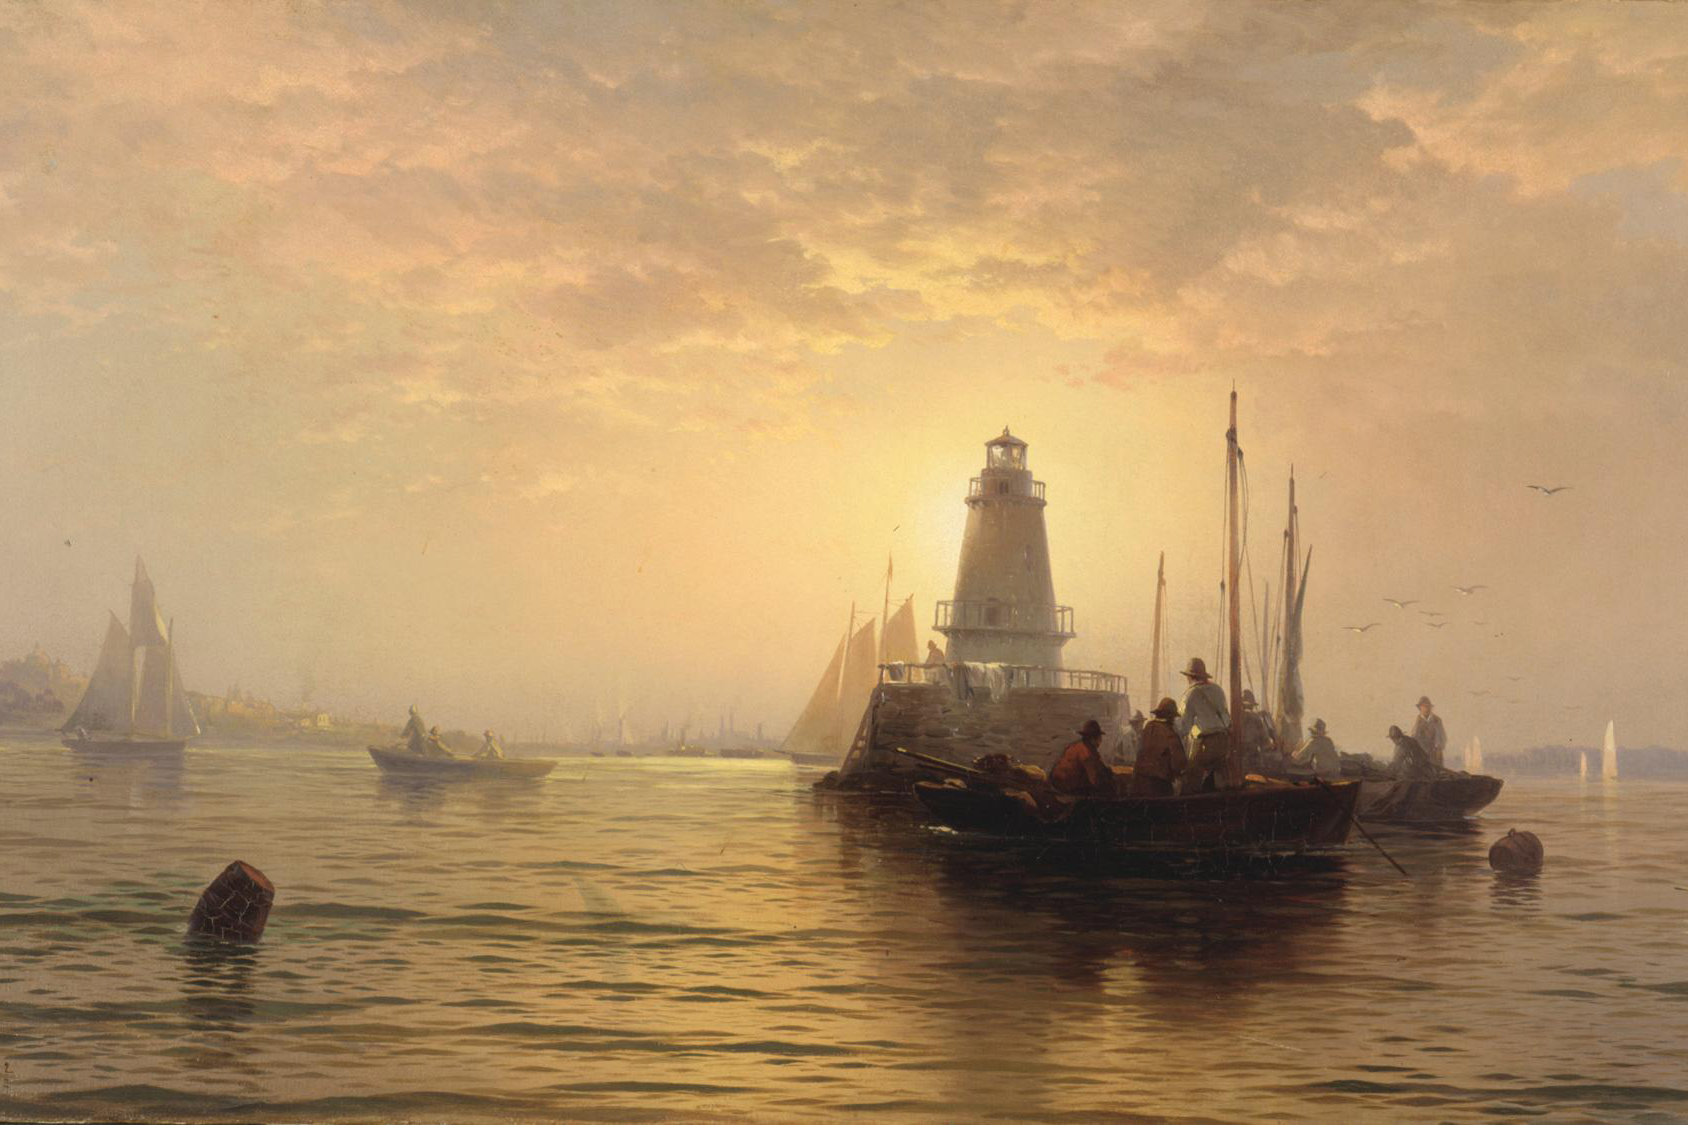 Robbins Reef Lighthouse: A Home in the Harbor